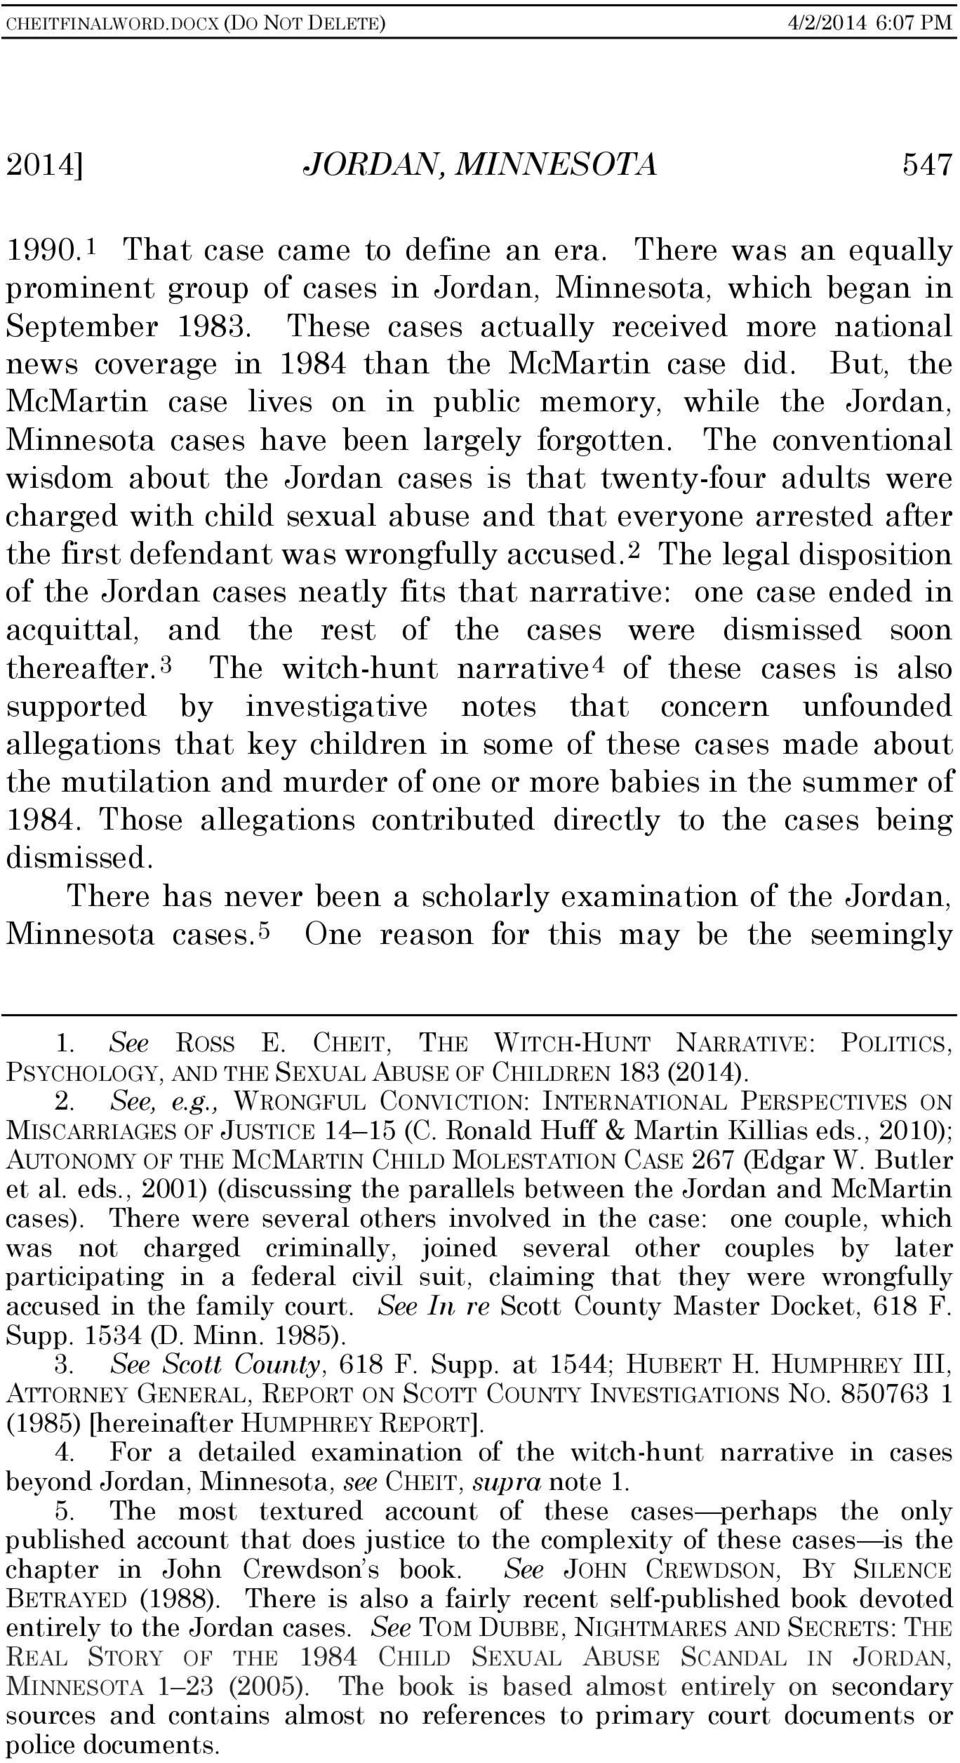 But, the McMartin case lives on in public memory, while the Jordan, Minnesota cases have been largely forgotten.